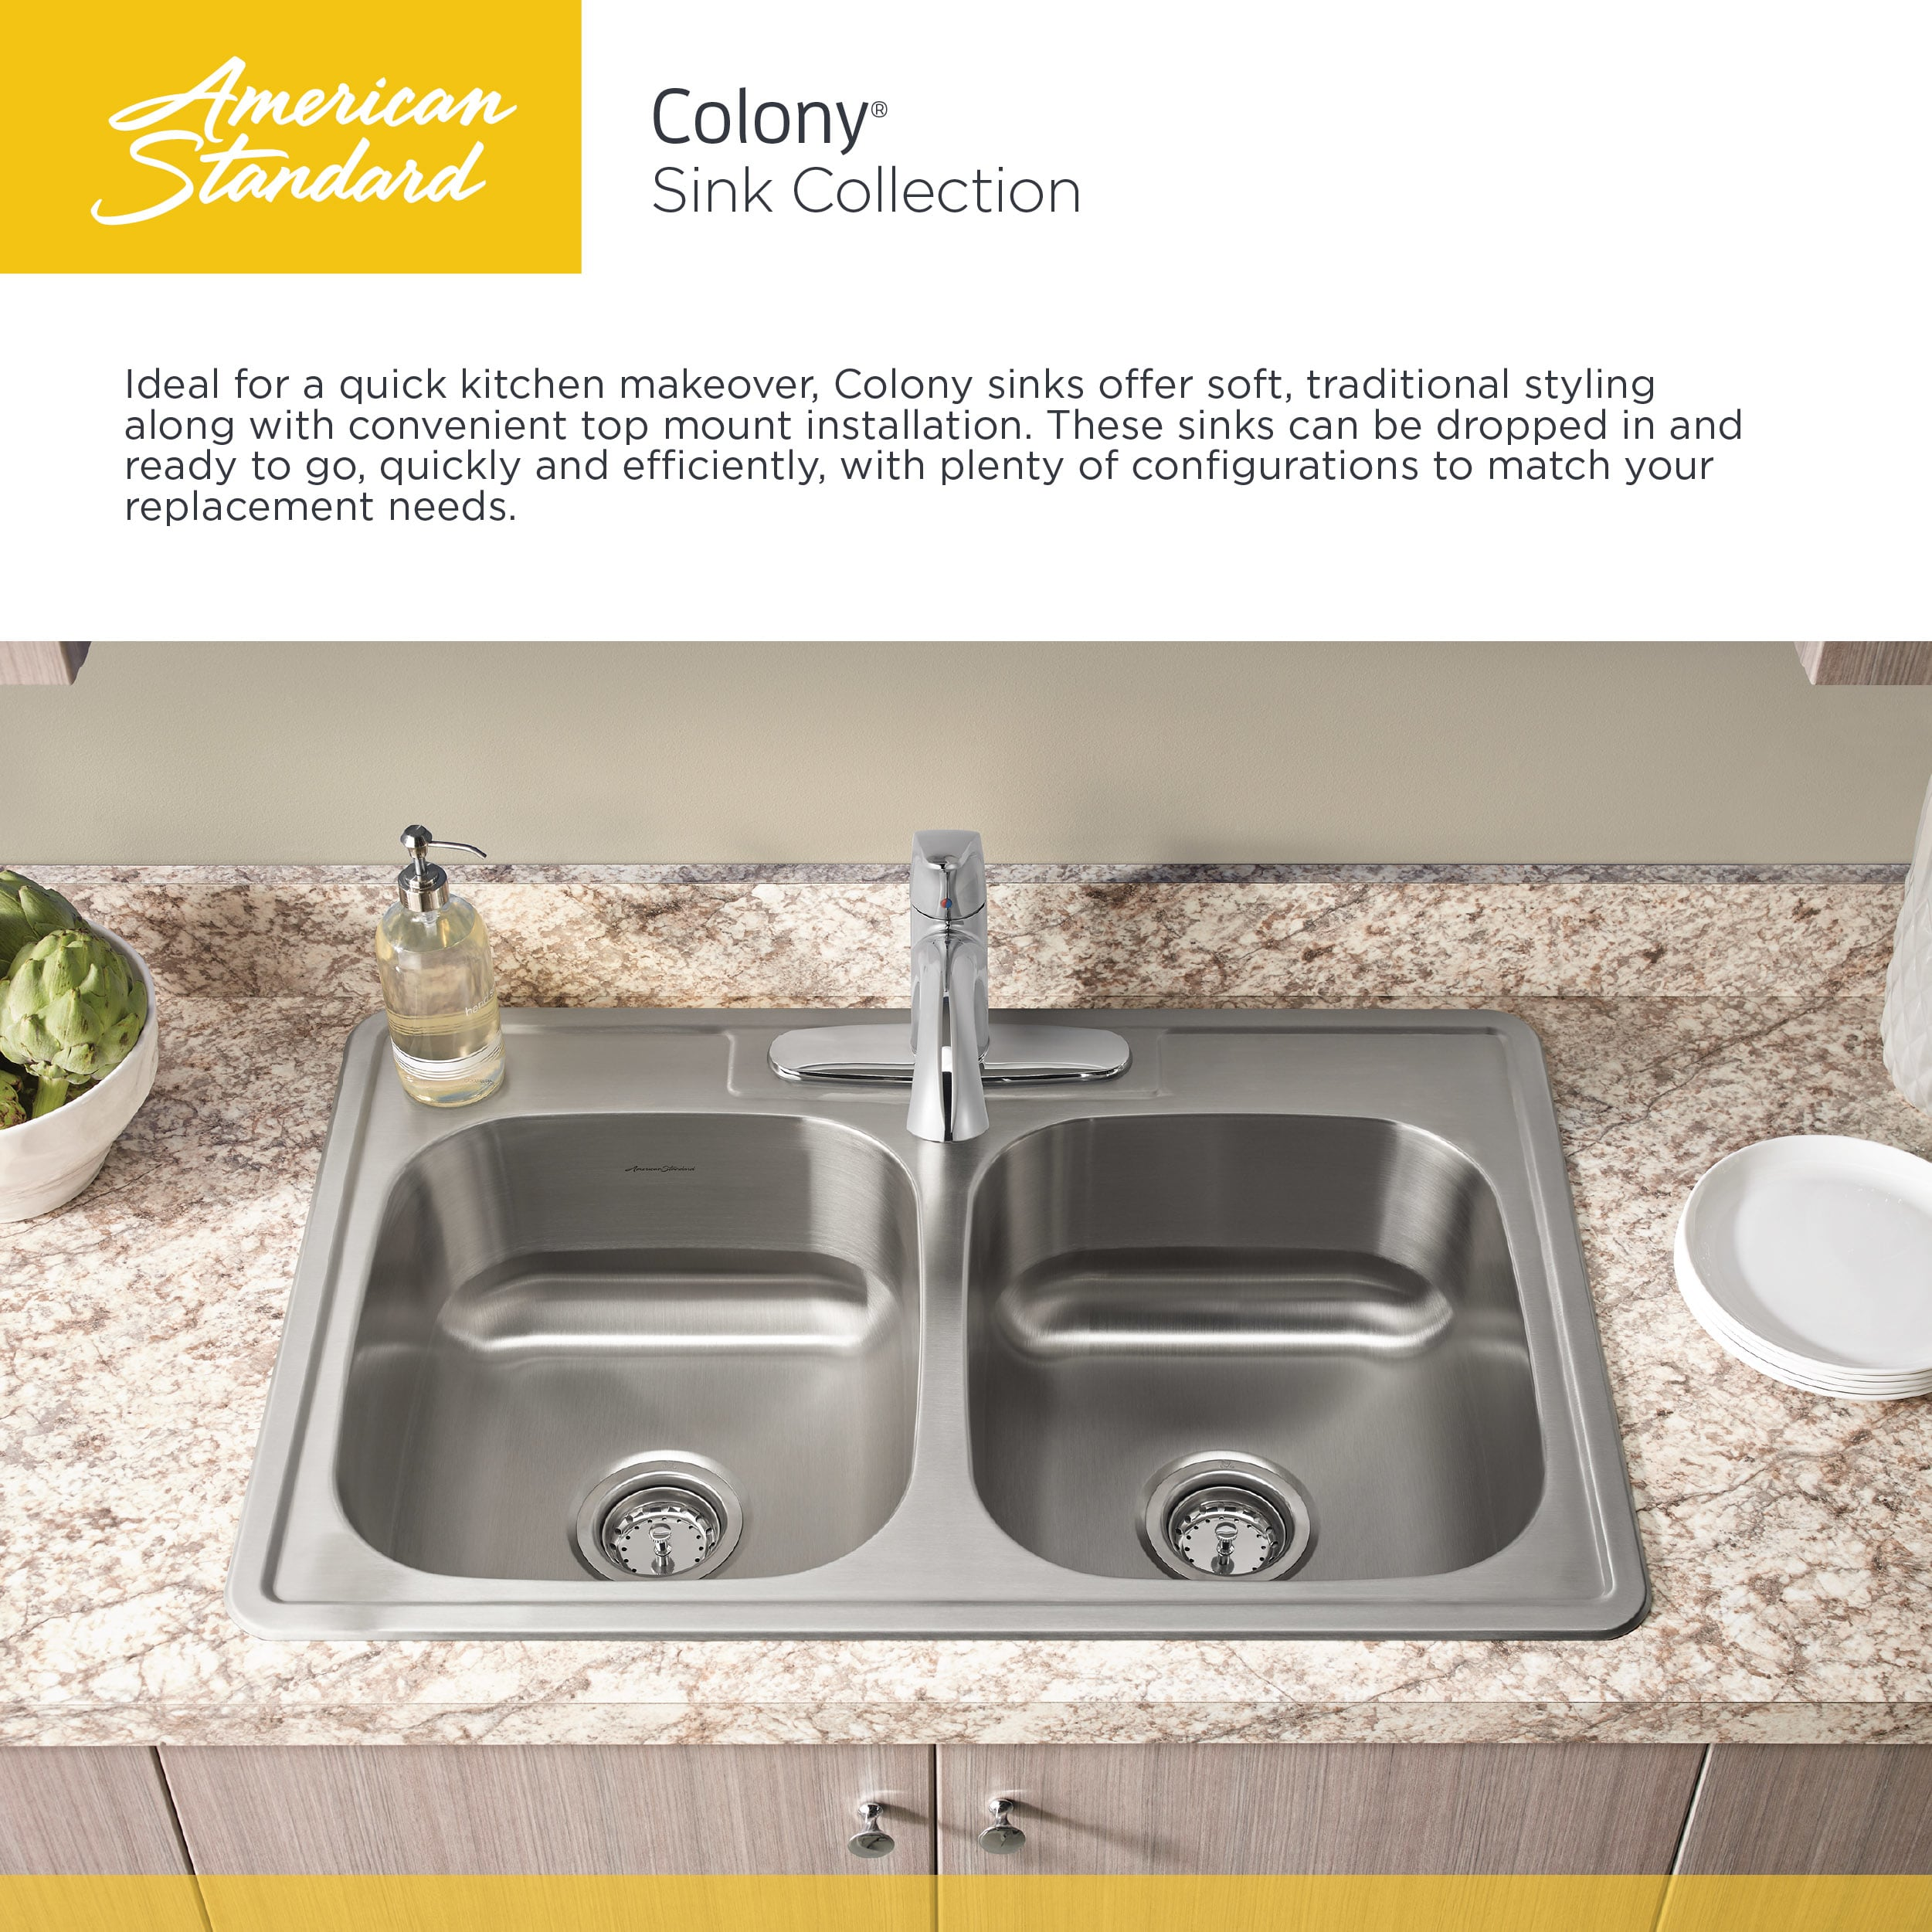 american standard 22sb6252283s075 stainless steel colony 25 single basin stainless steel kitchen sink for drop in installations with three faucet holes - Kitchen Sink Drain Configurations